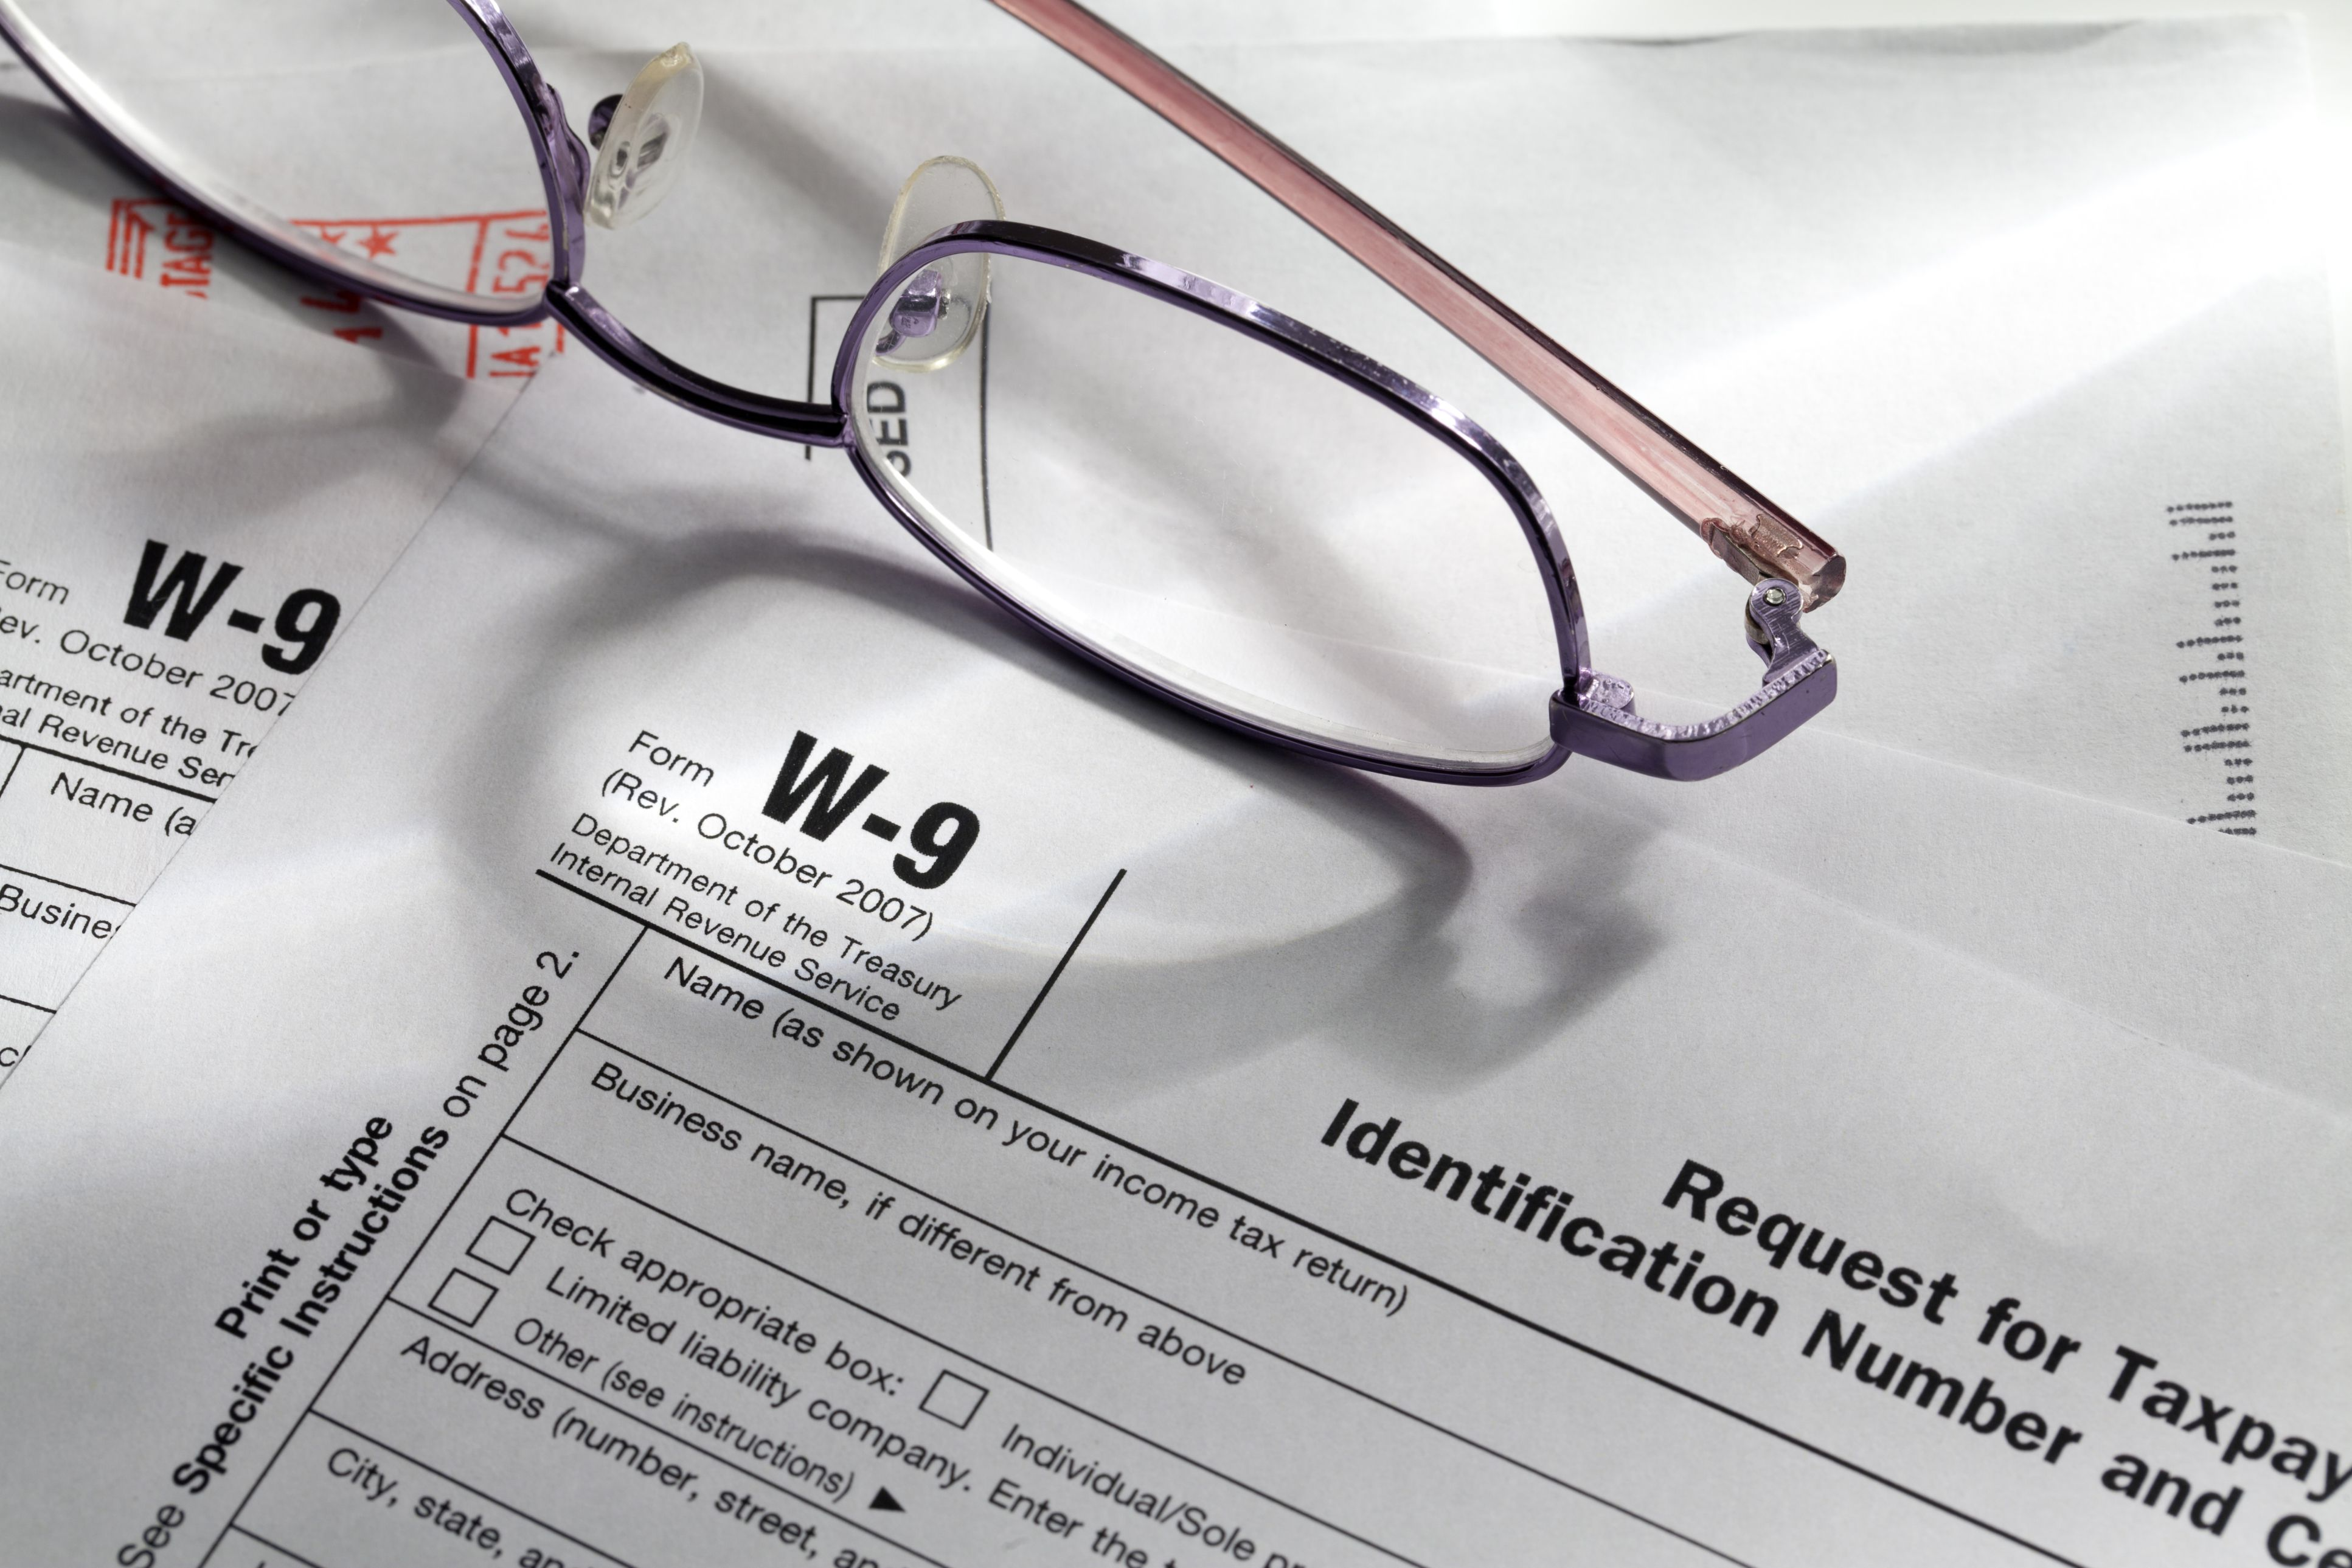 W-9 Tax Form: What to Consider Before You Sign